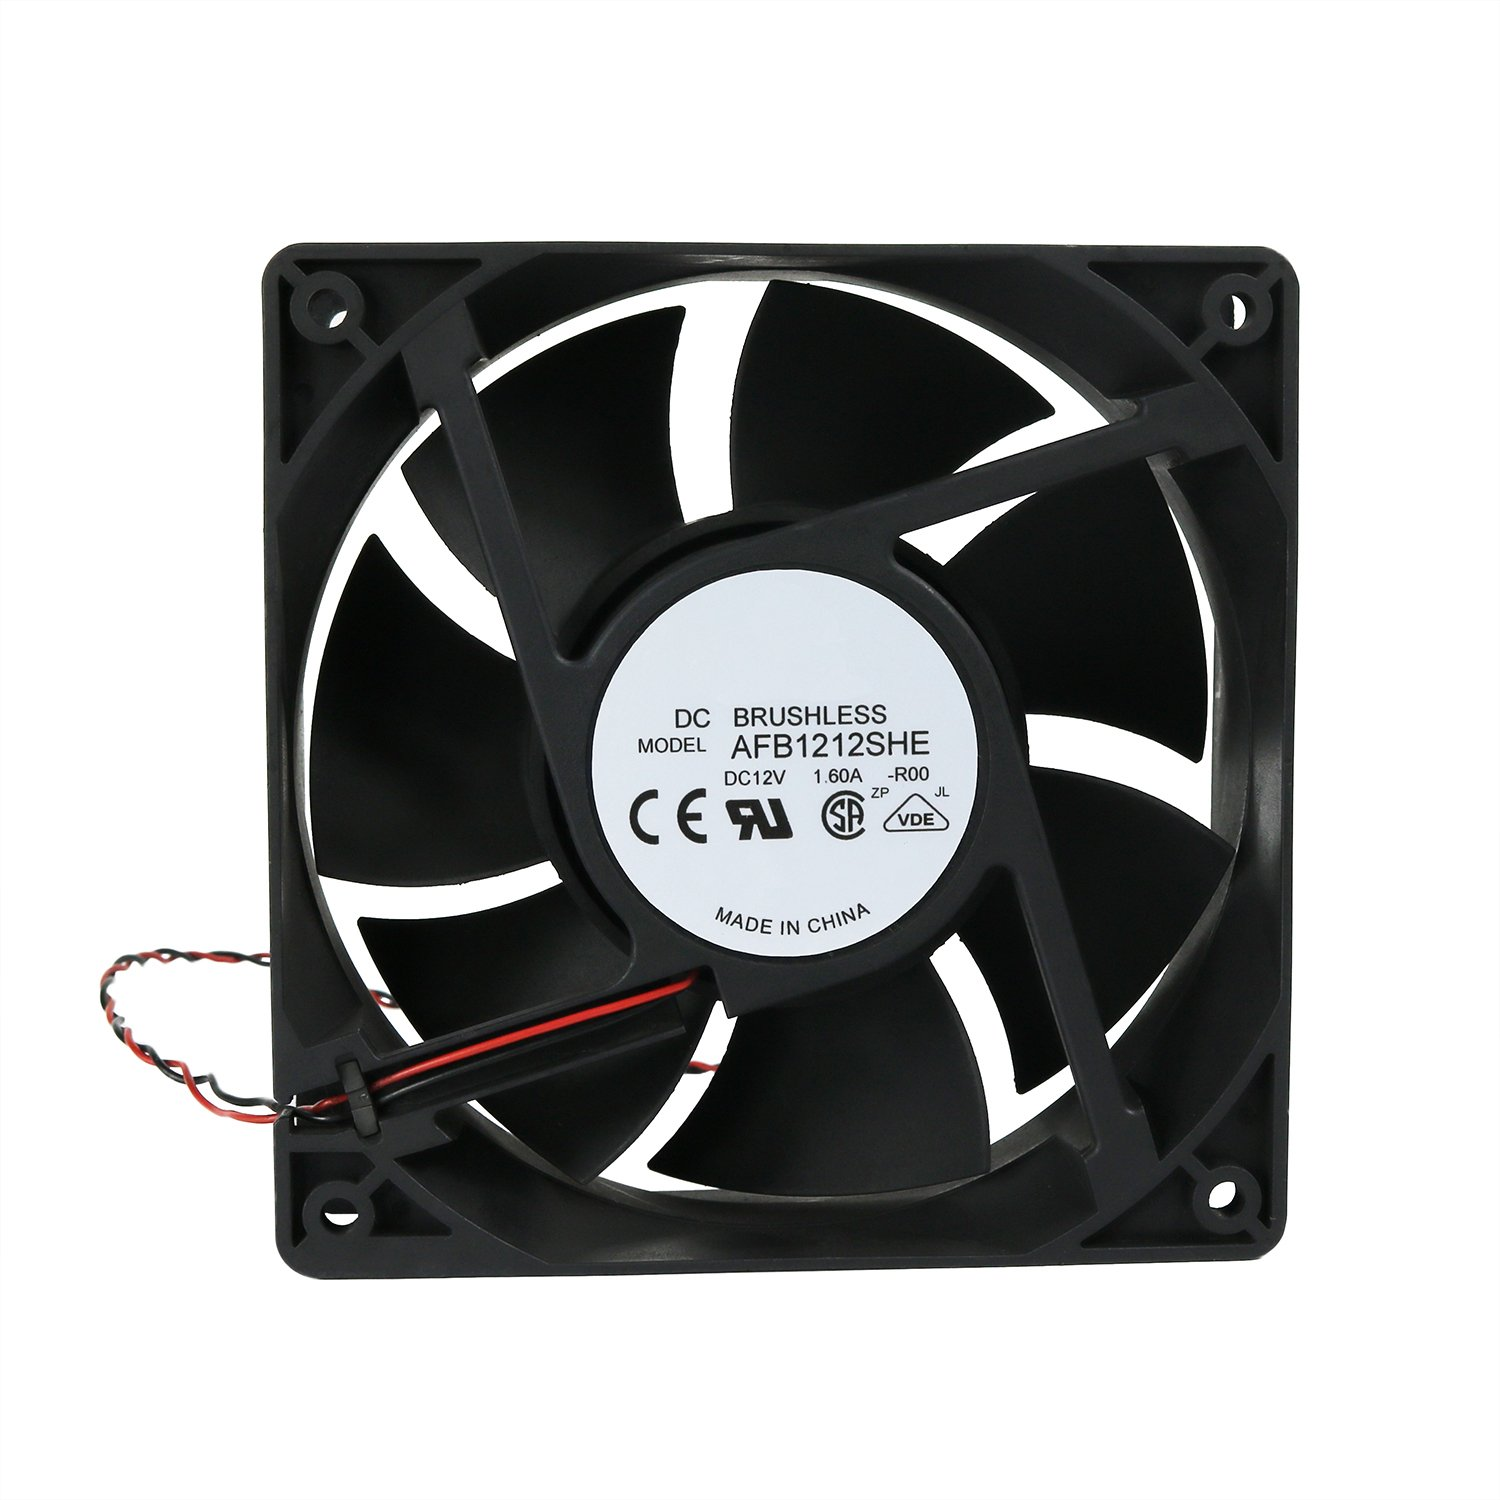 Generic 120x38mm Cooling Fan, Replace AFB1212SHE High CFM Cooling Fan, 120mm by 120mm by 38mm with 2Pin 2Wire Connector (12V DC)